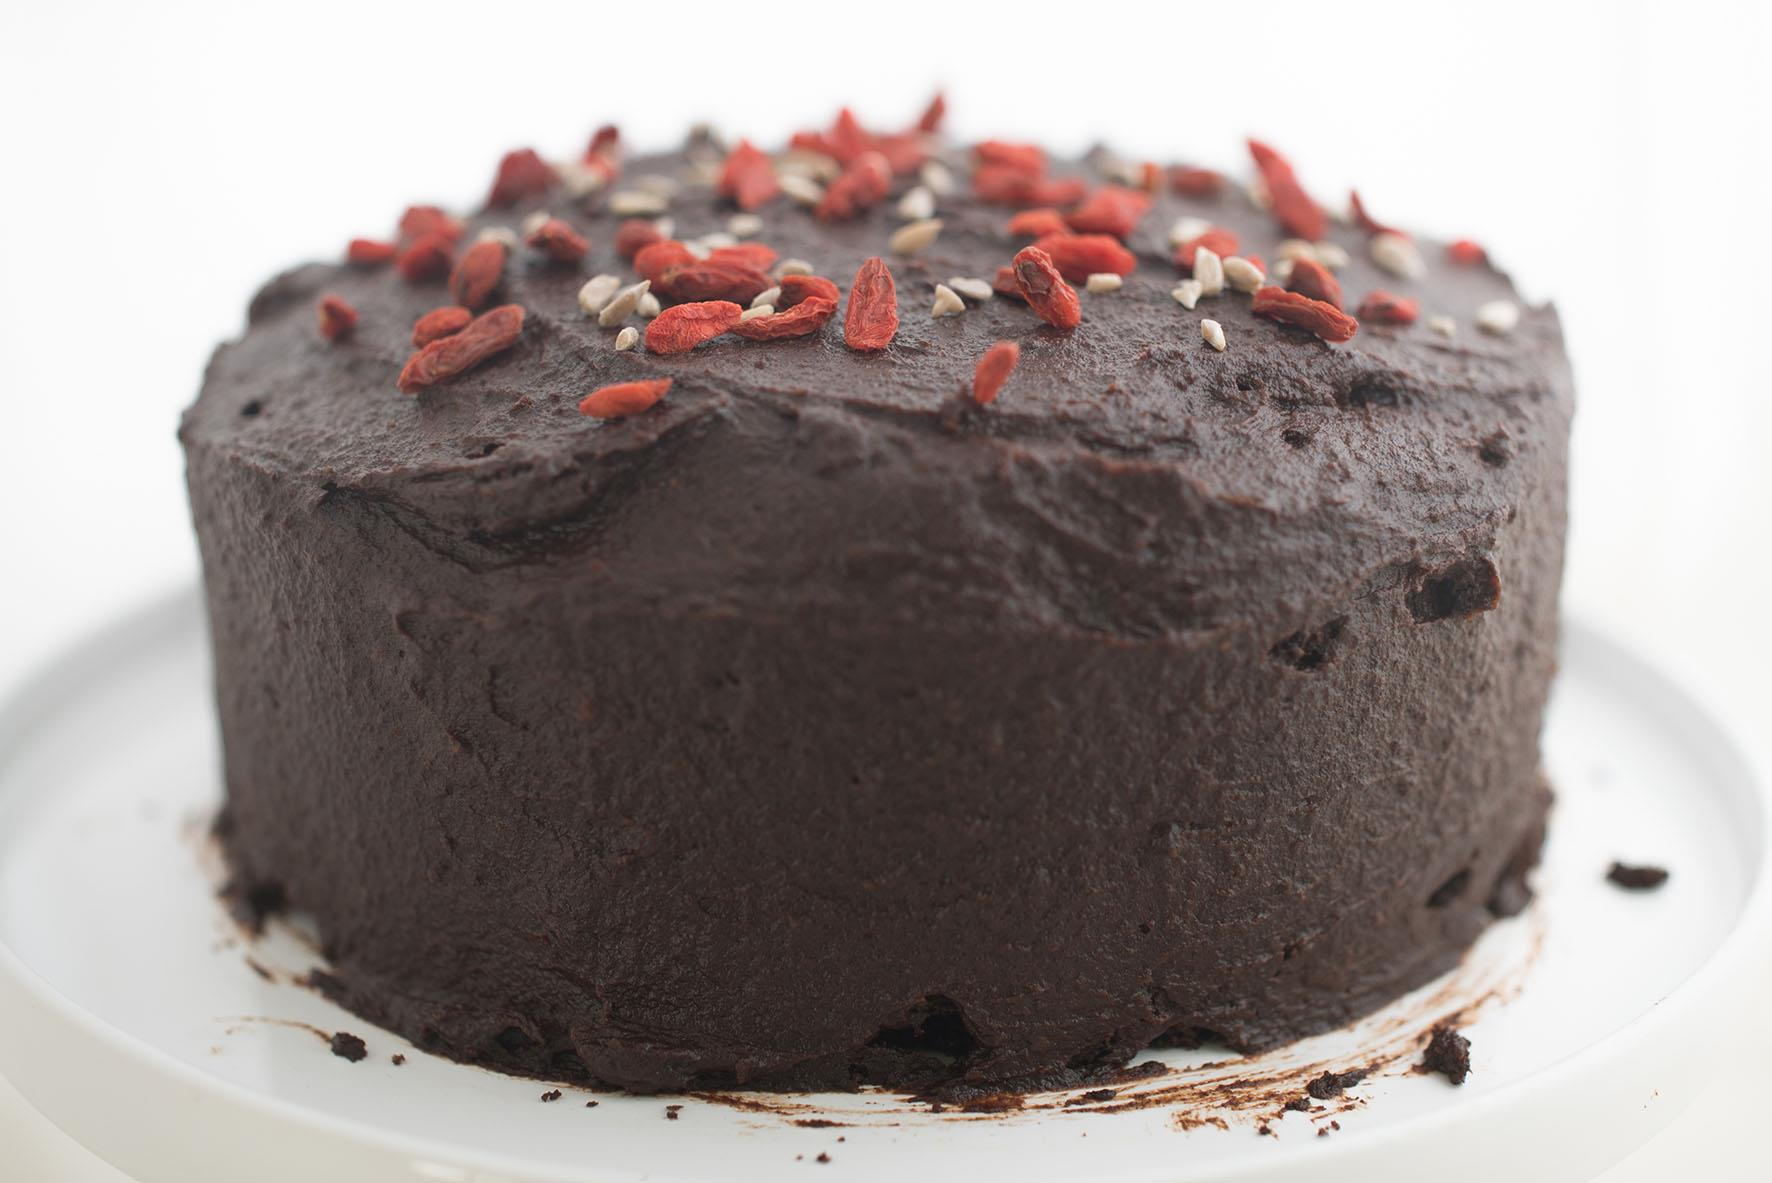 Guilt-free-chocolate-cake-recipe-dessert-1